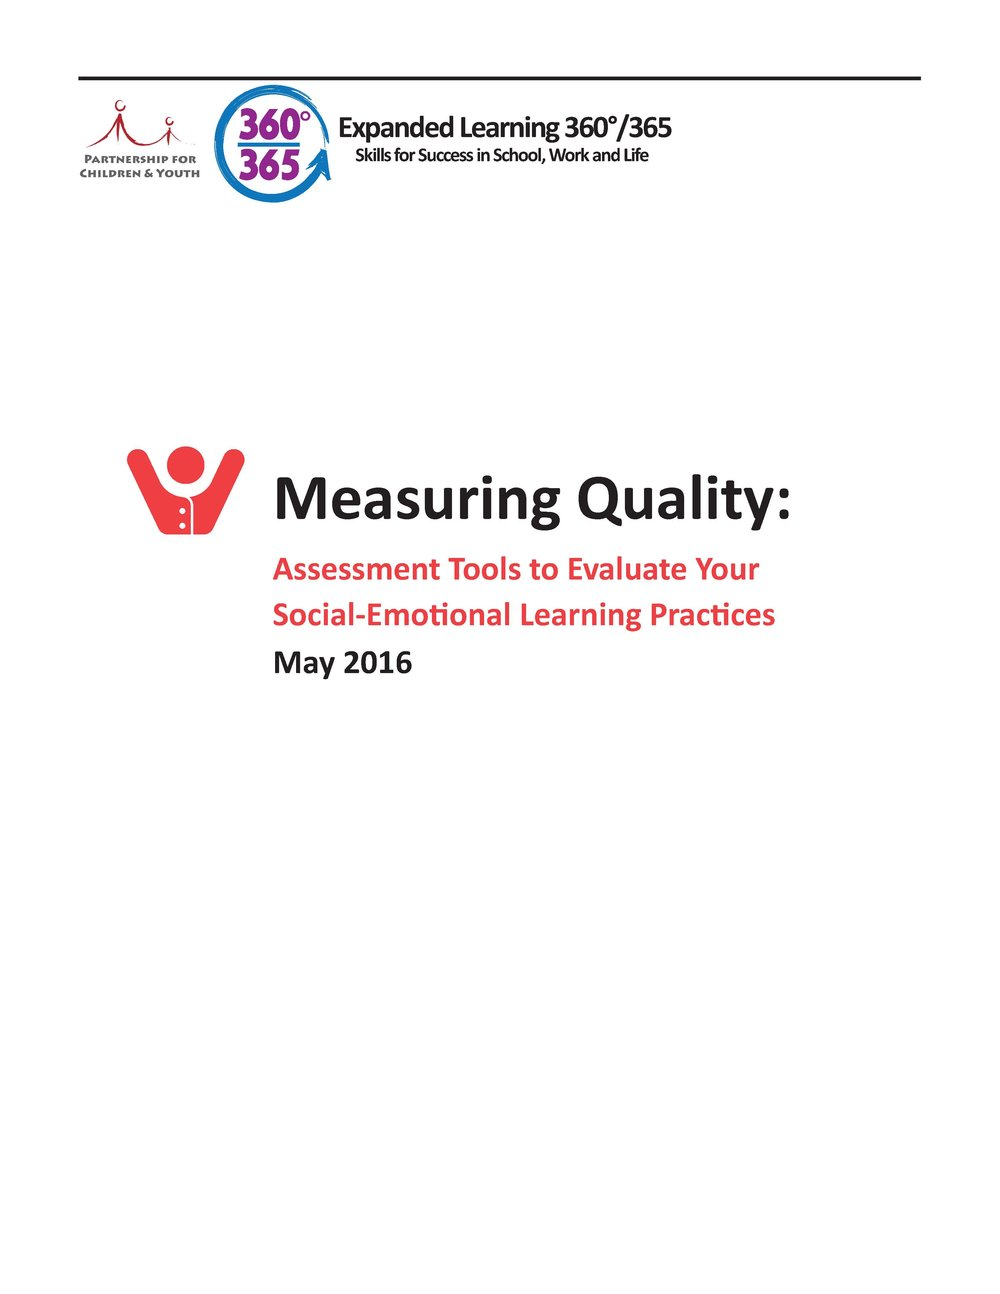 Measuring Quality: Assessment Tools to Evaluate Your SEL Practices - This guide is designed to help California school districts and their partner organizations identify tools to assess the quality of their practices in relation to SEL.